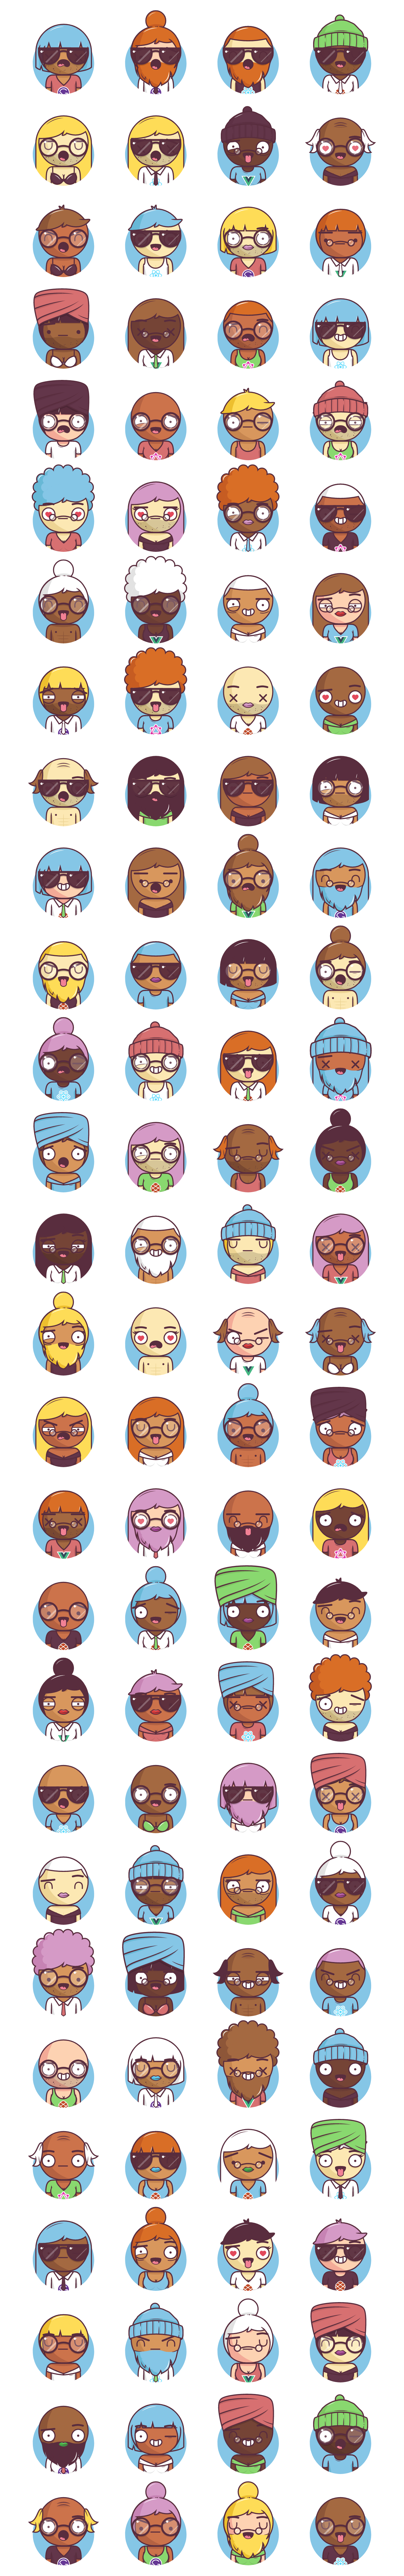 Big Heads Characters Free Illustrations - Easily generate characters for your projects. Combine expressions, clothing, hair styles and colors into billions of different unique characters. Embed them on your website, use them in your favourite design software, or import them from the React library!